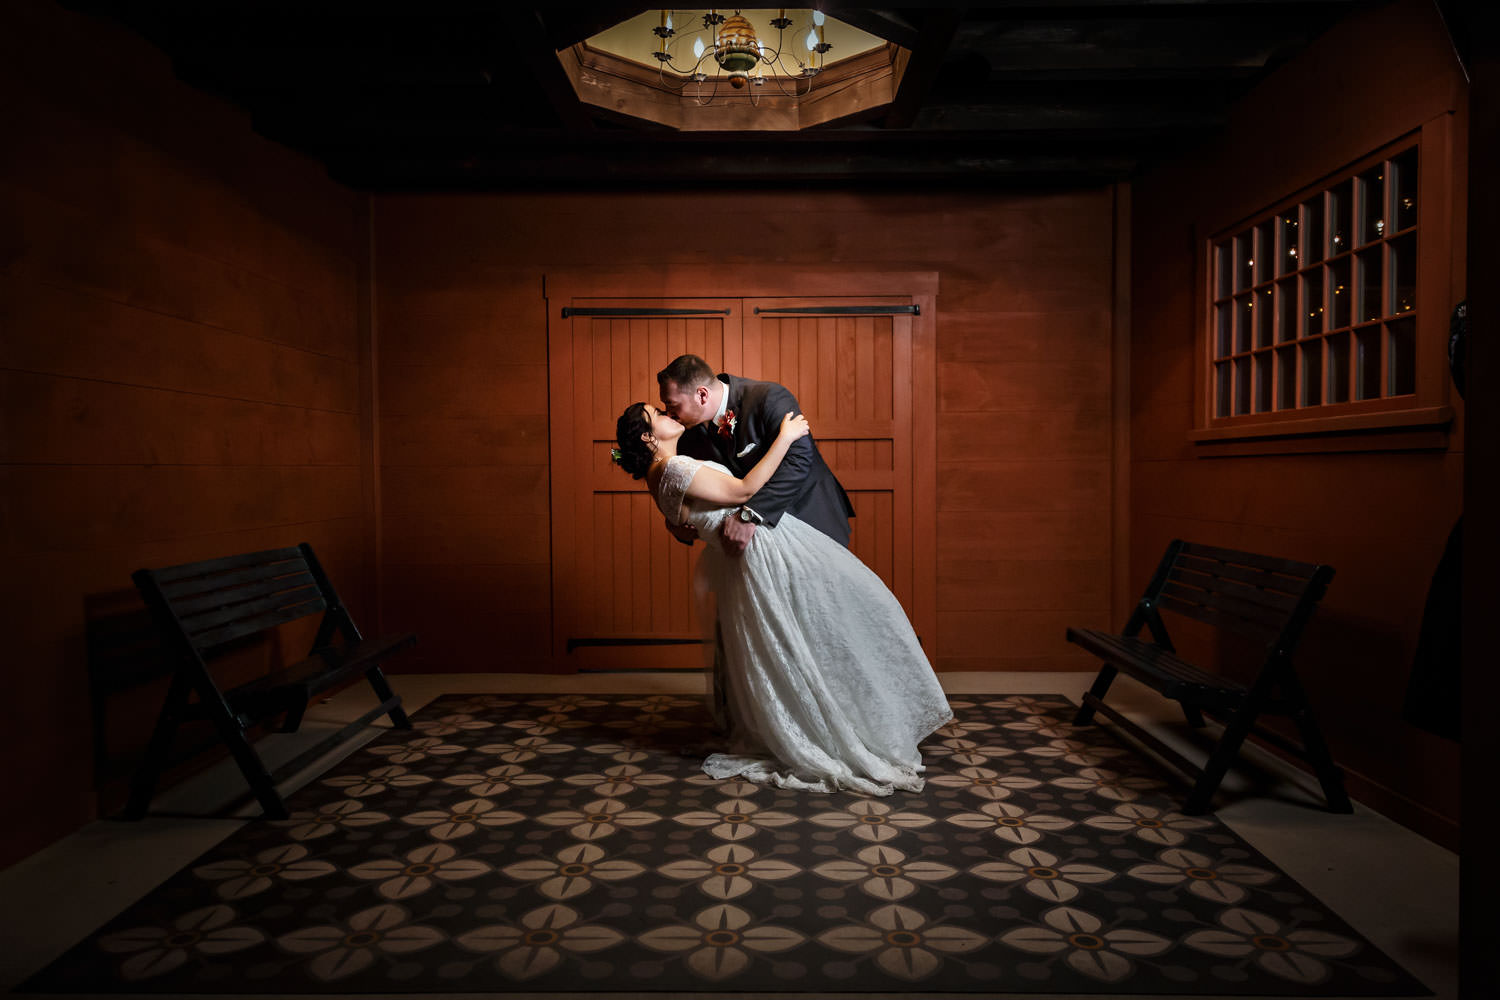 Night time photo of Bride and groom with groom dipping the bride and kissing in front of door to the reception